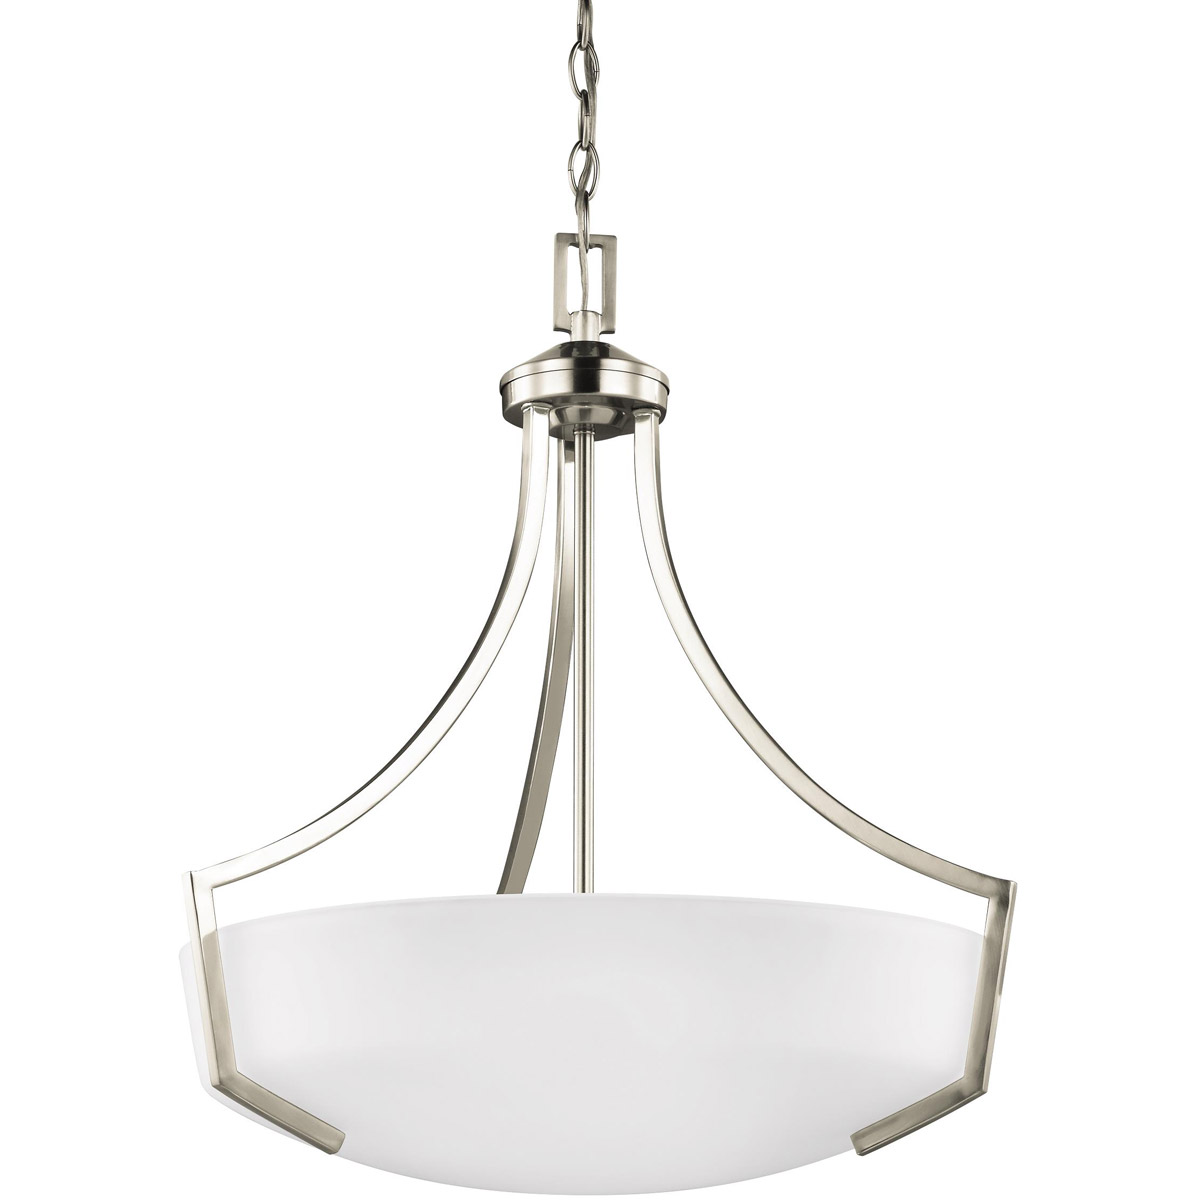 Sea Gull 6624503-962 Hanford 3 Light 21 inch Brushed Nickel Pendant Ceiling Light photo